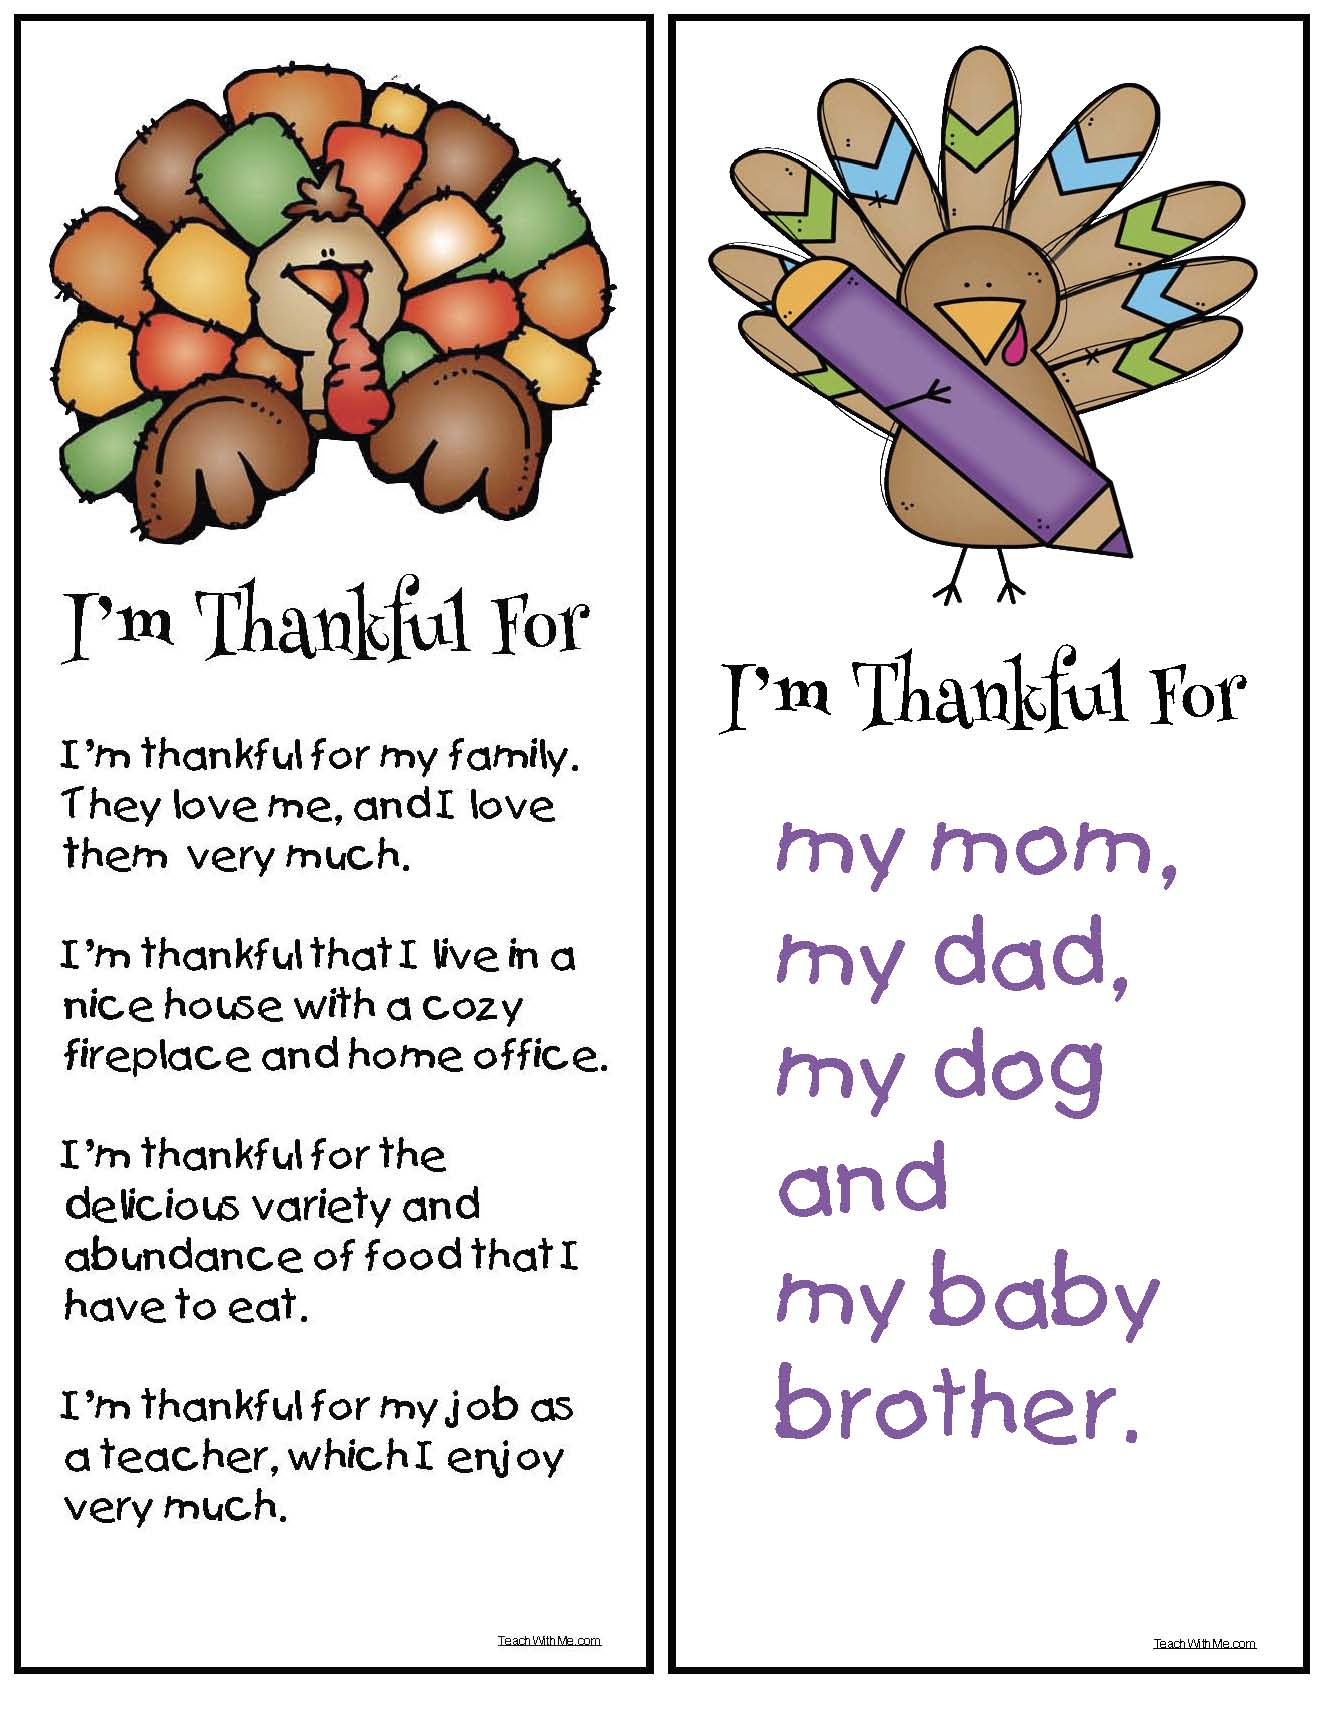 turkey crafts, thanksgiving crafts, turkey activities, thanksgiving activities, november writing prompts, i'm thankful for writing prompts, november bulletin boards